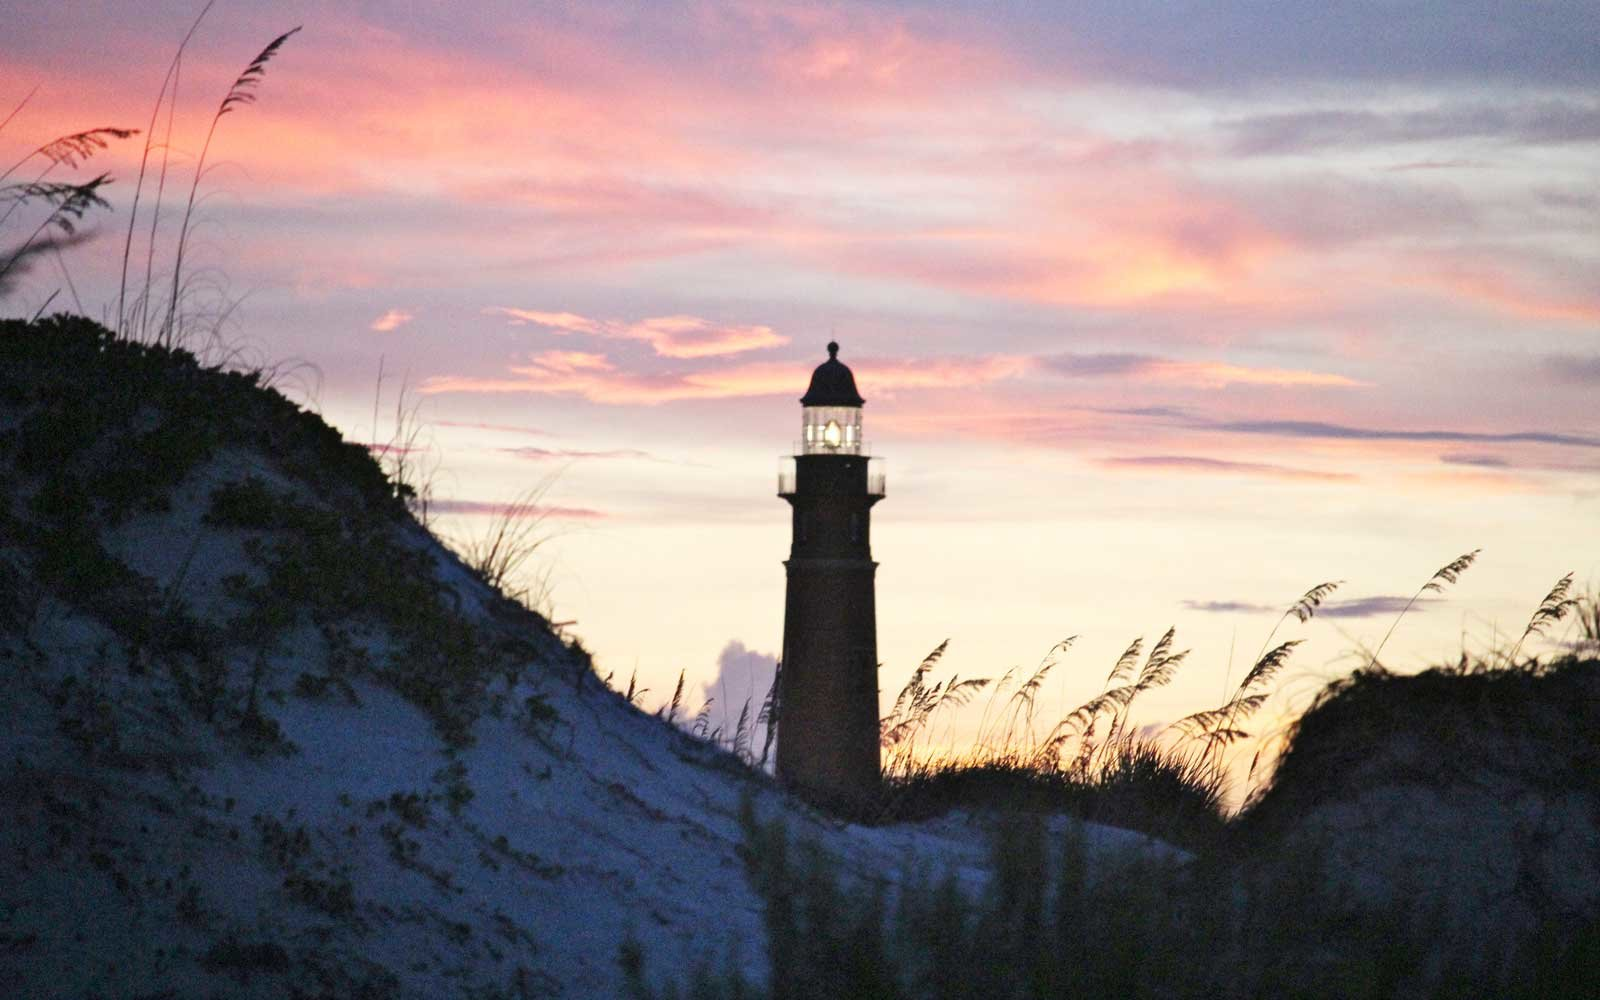 The Ponce de Leon Inlet Lighthouse silhouetted at dusk by brilliant pink and purple clouds swirling at sunset